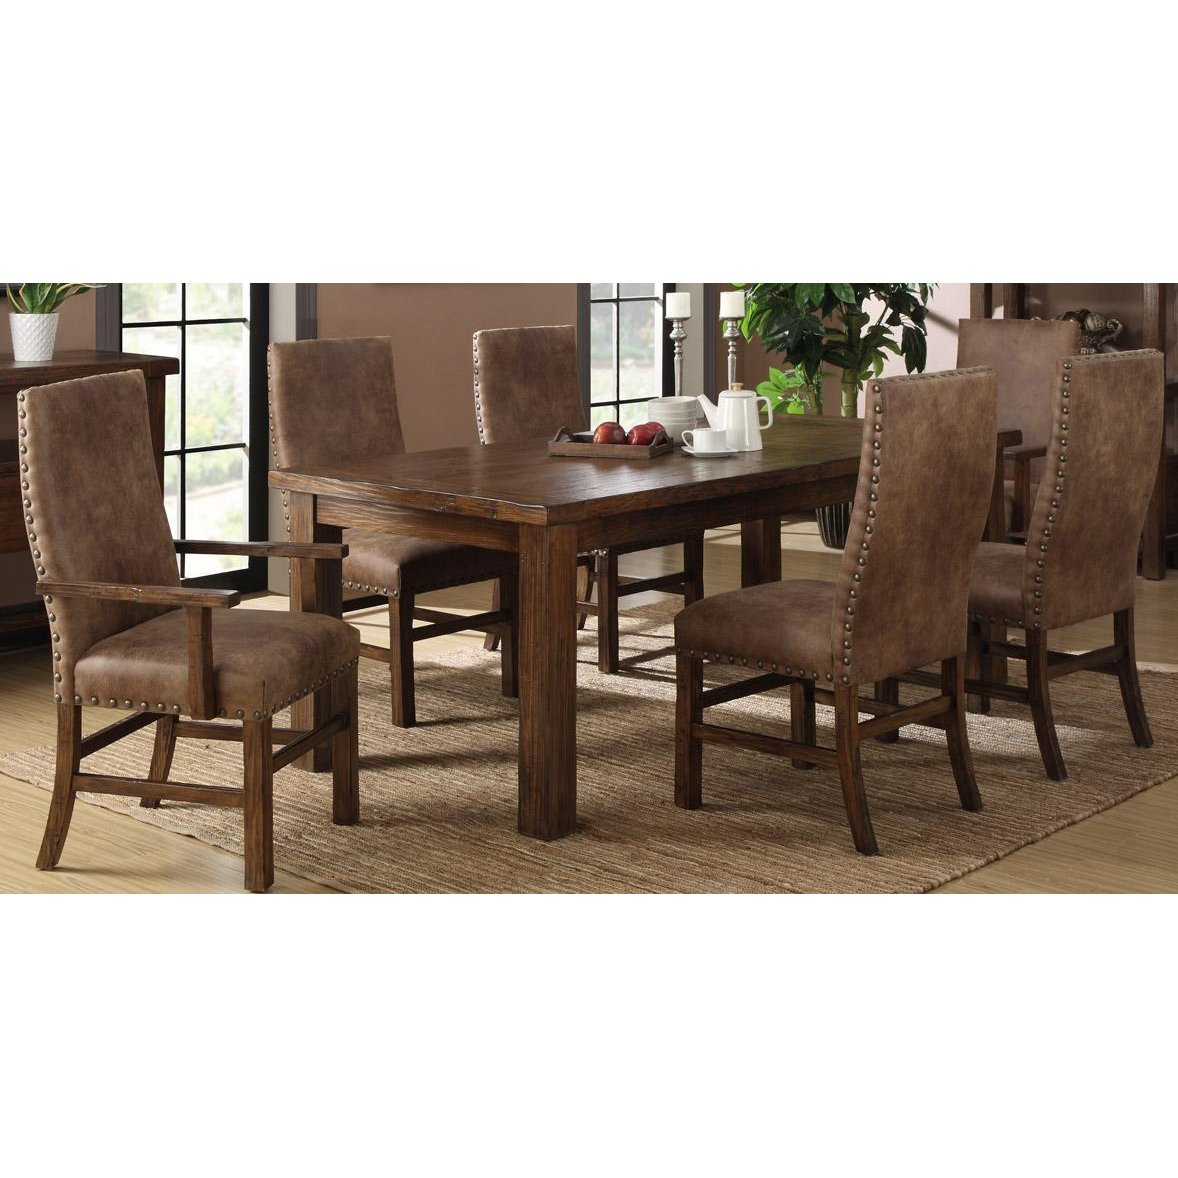 Brown 9 Piece Dining Room Set with Upholstered Chairs   Chambers Creek